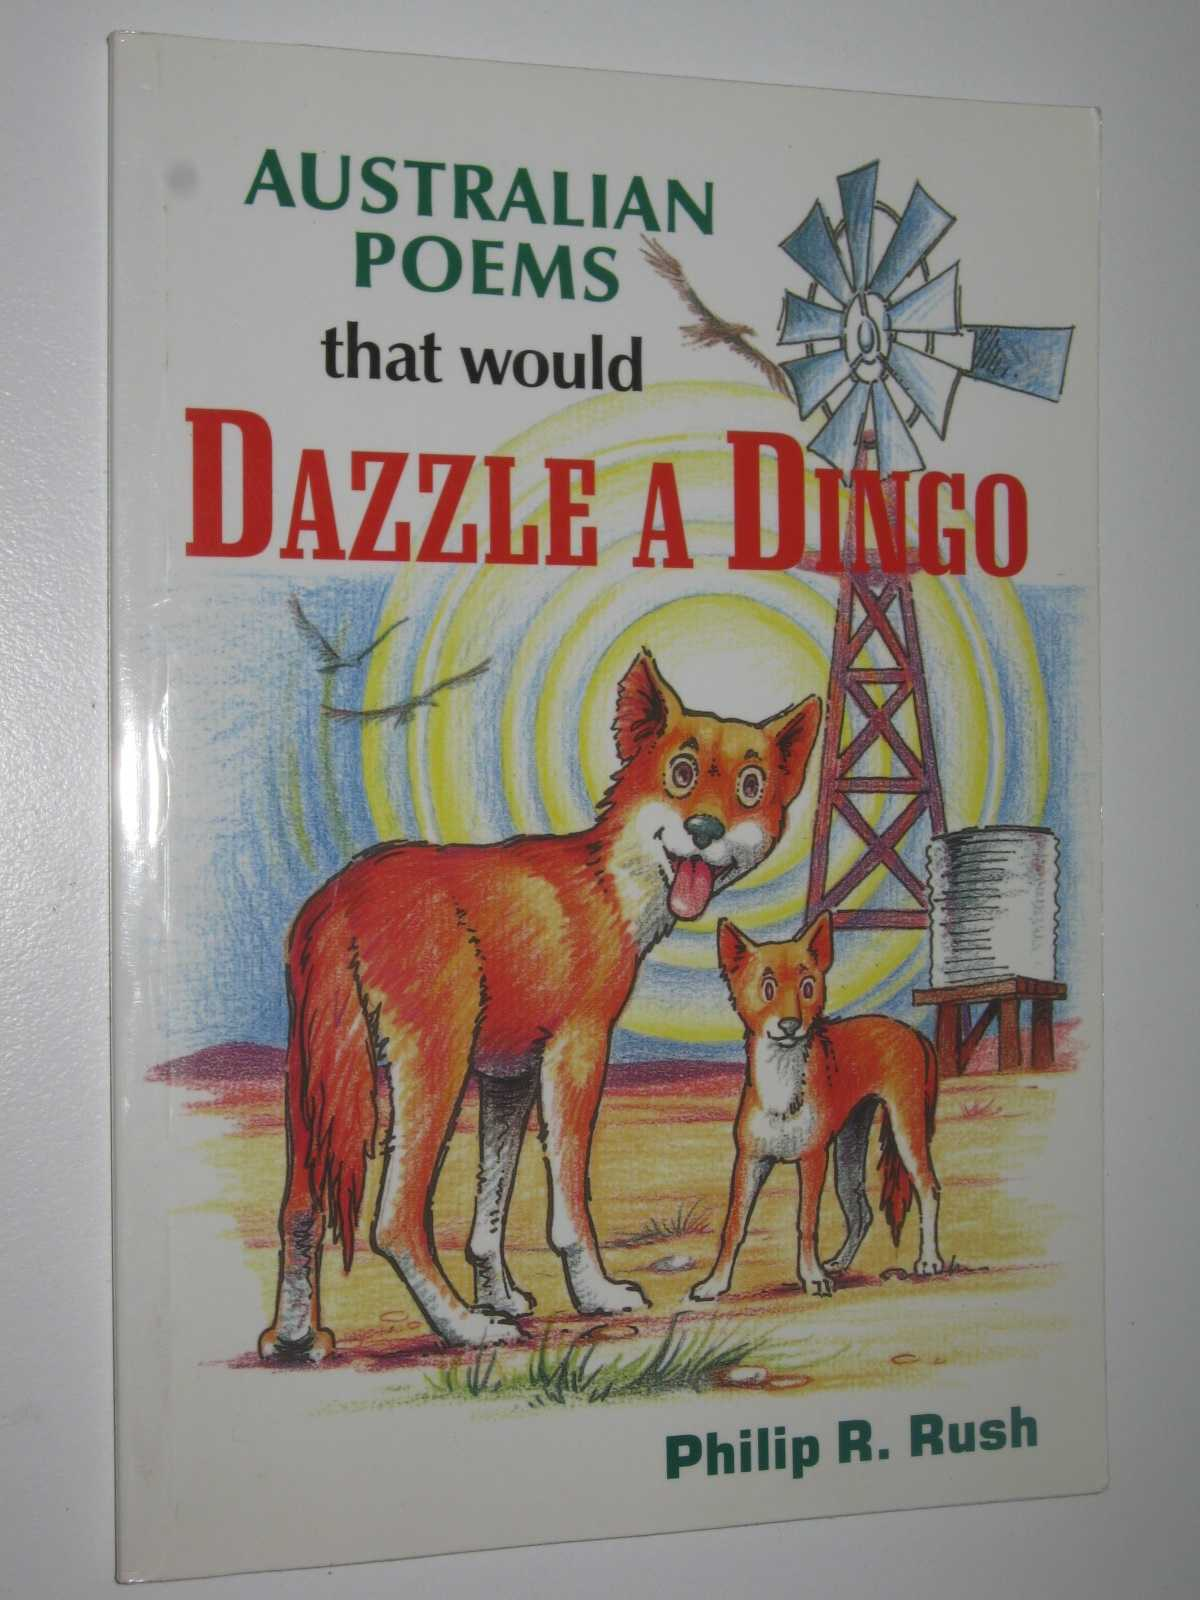 Australian Poems That Would Dazzle a Dingo, Rush, Philip R.